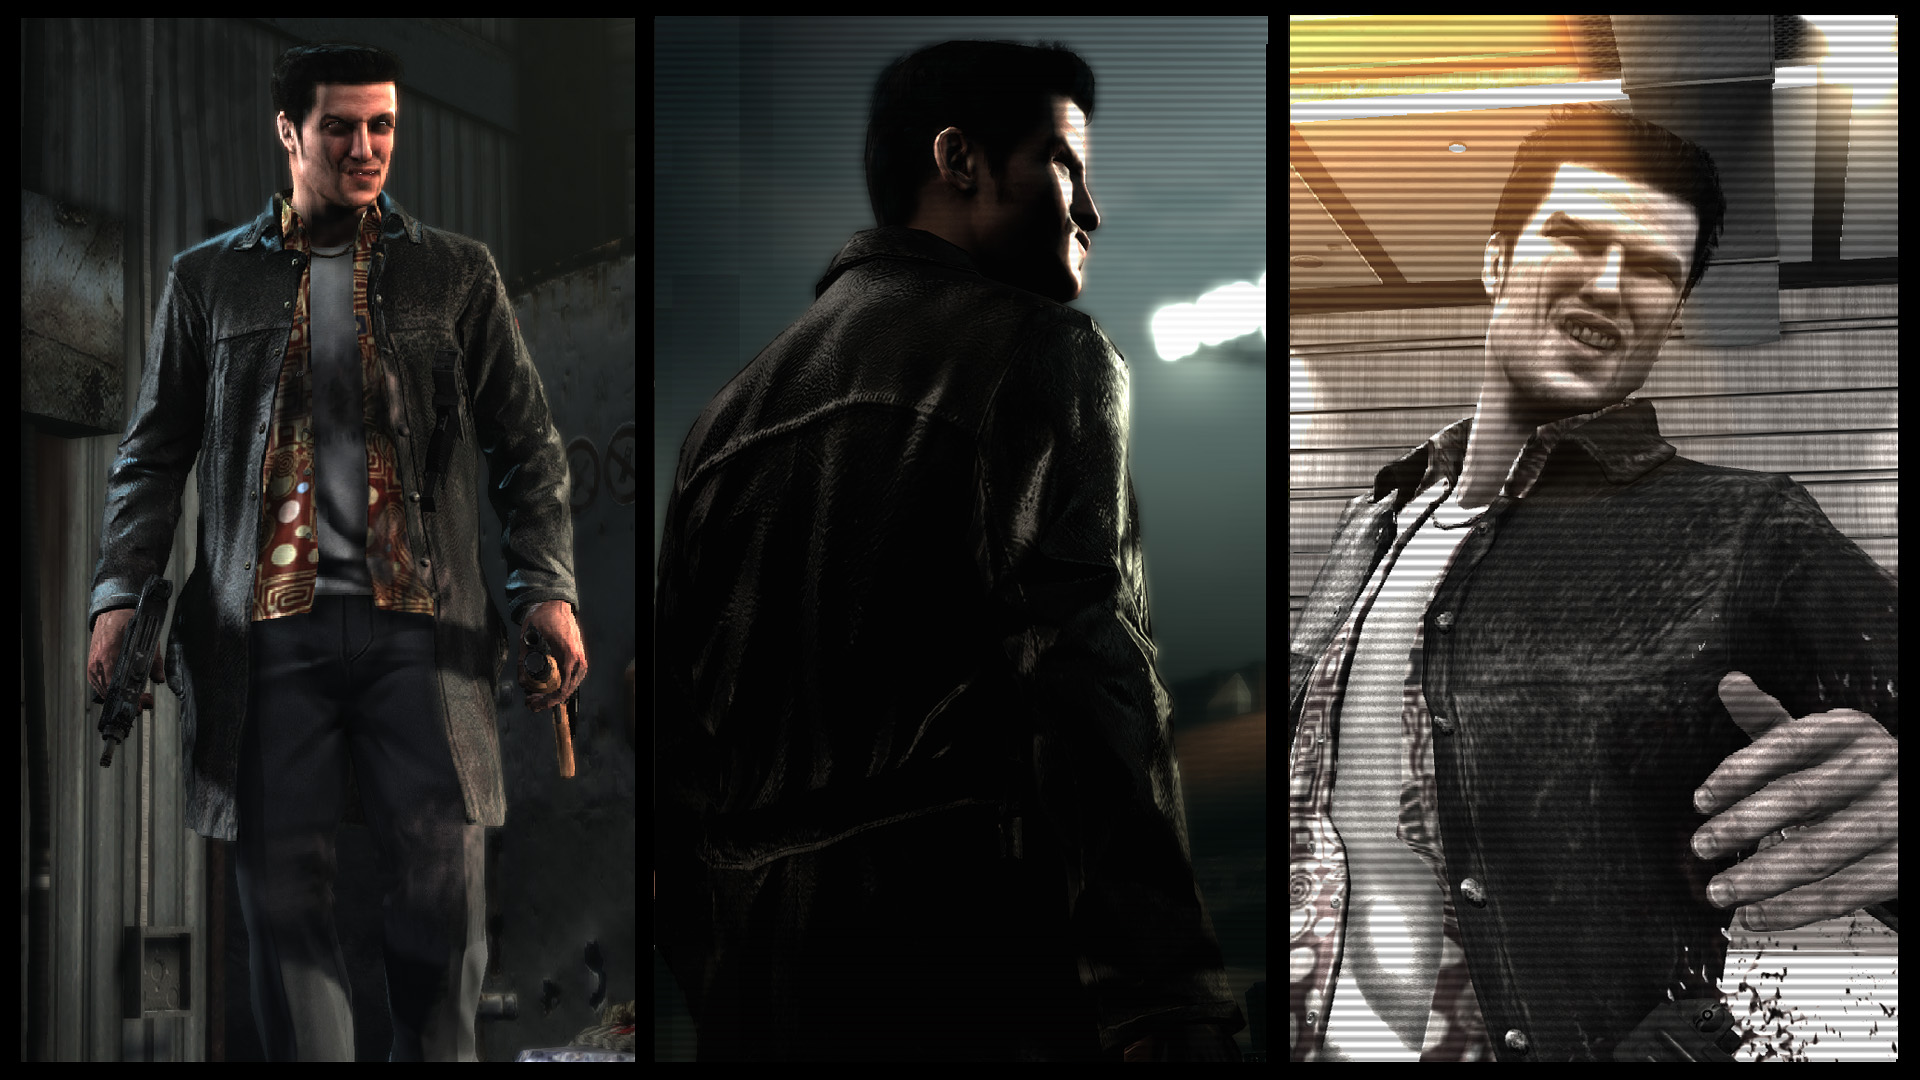 Hd Sam Lake Is Back Image Max Payne 1 Max In Campaign Mod For